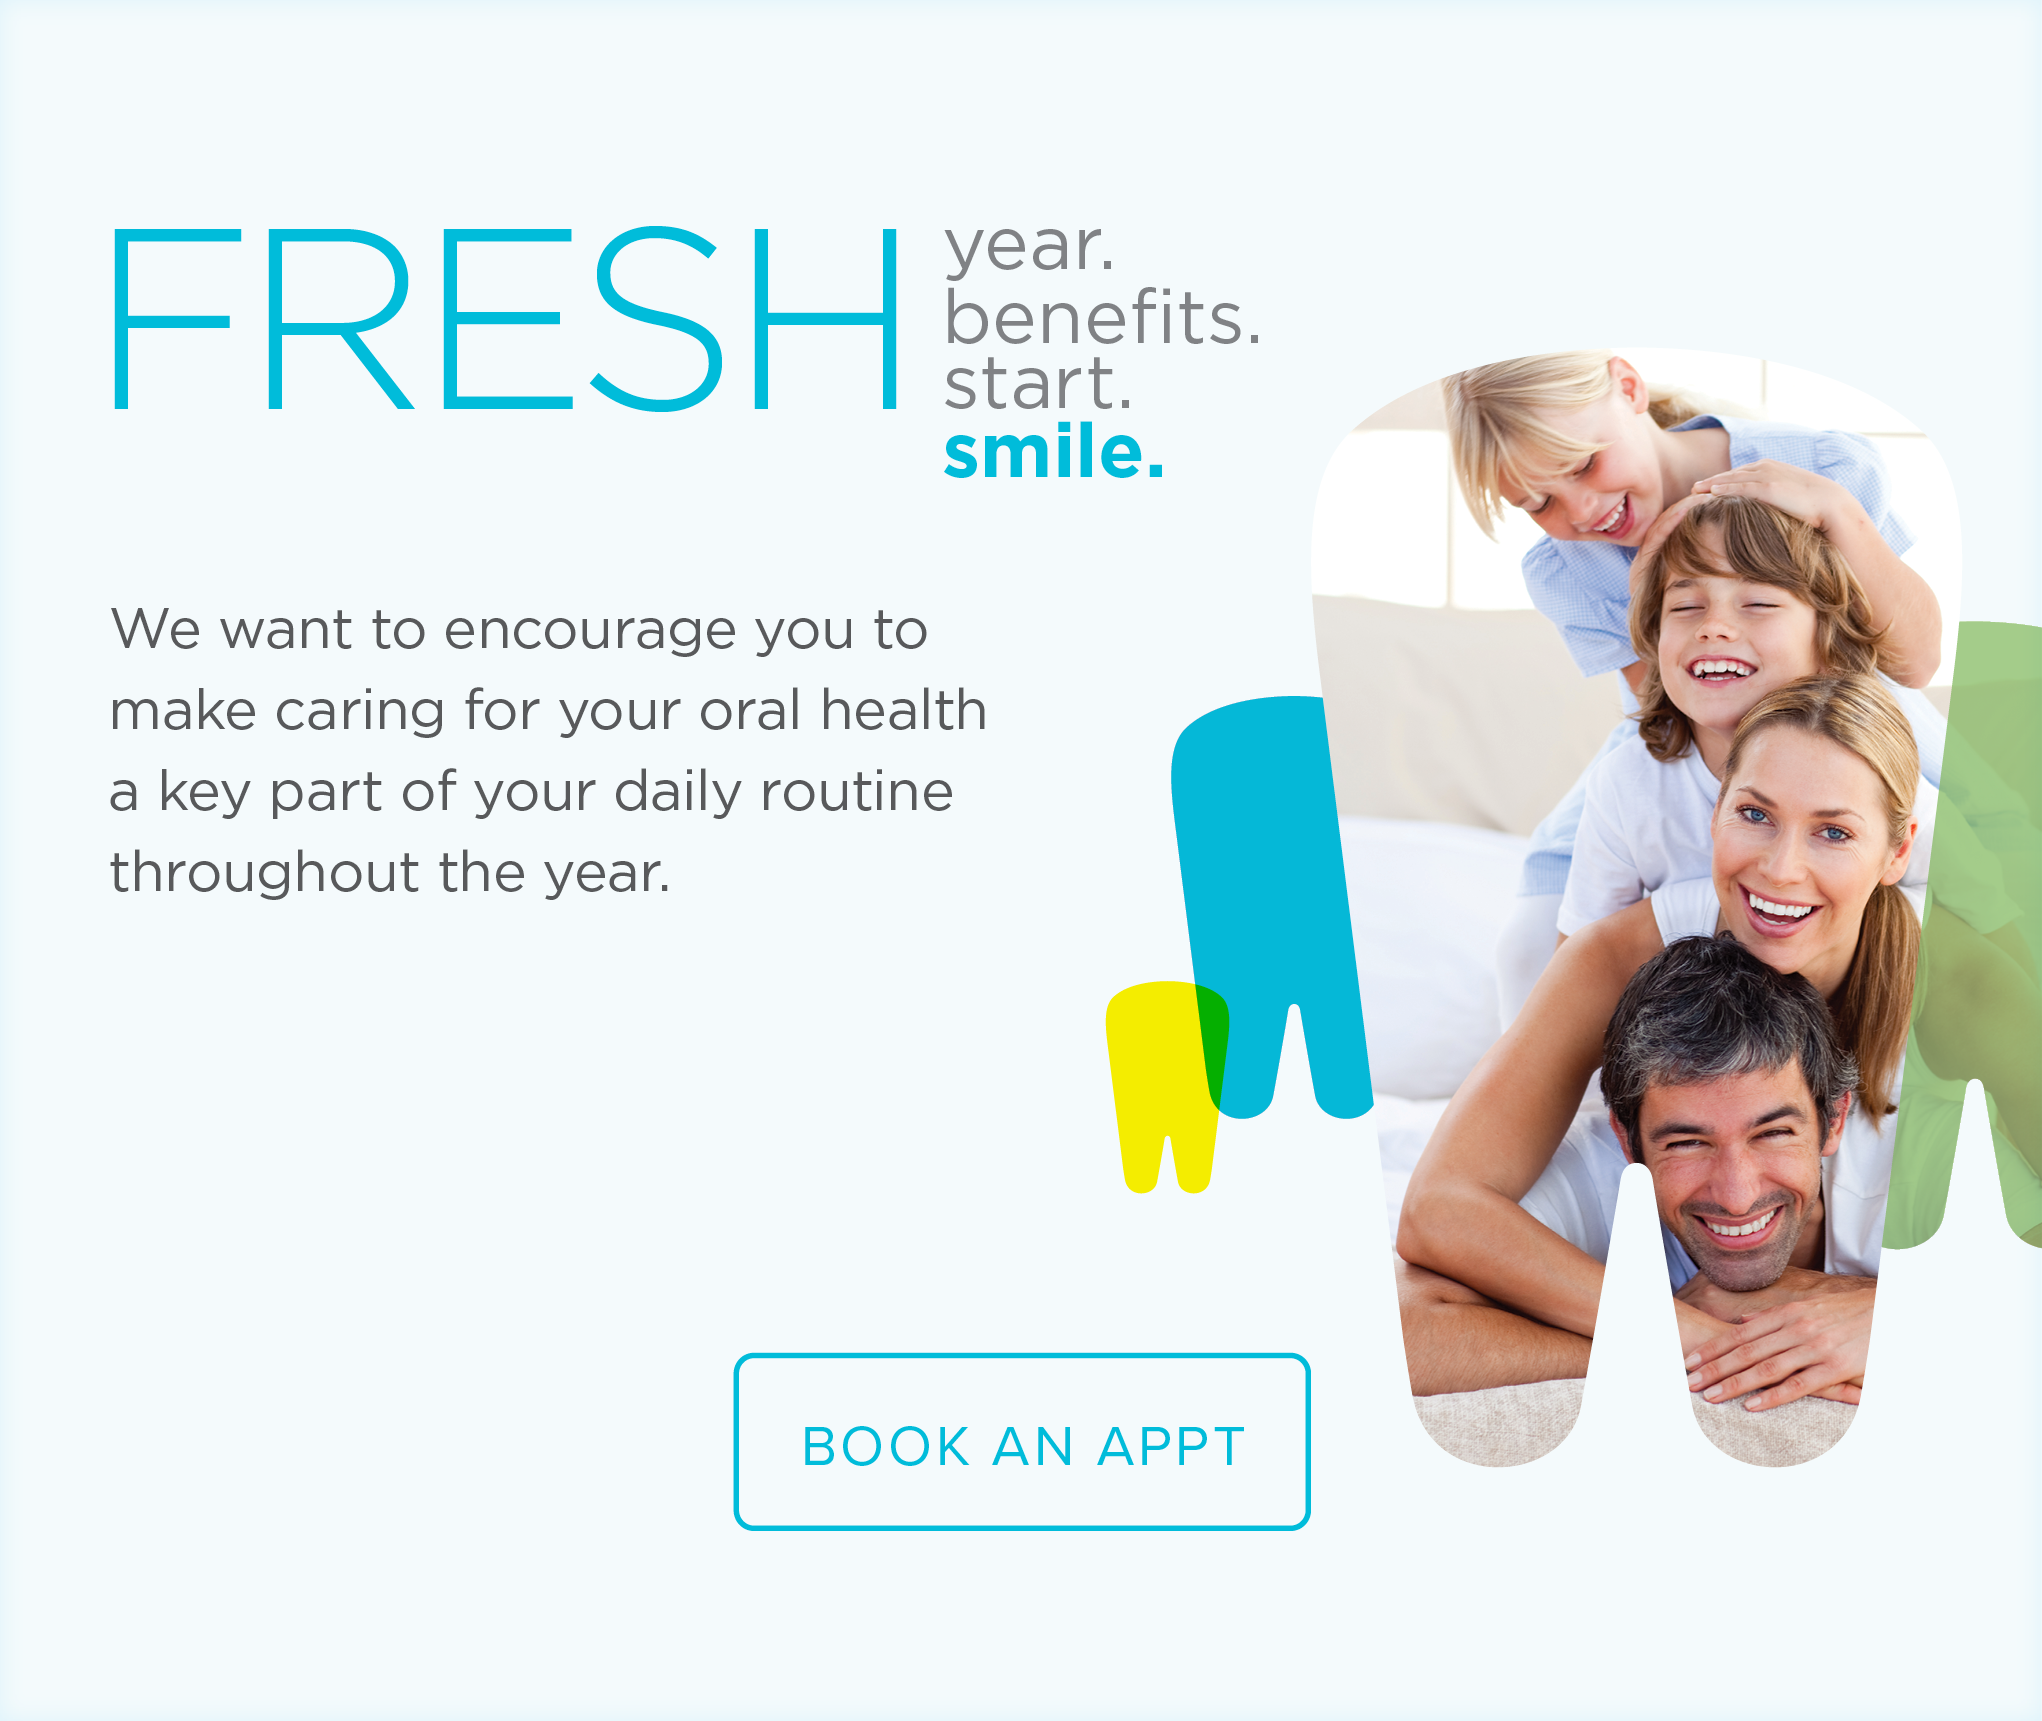 Tri-City Smiles Dentistry and Orthodontics - Make the Most of Your Benefits